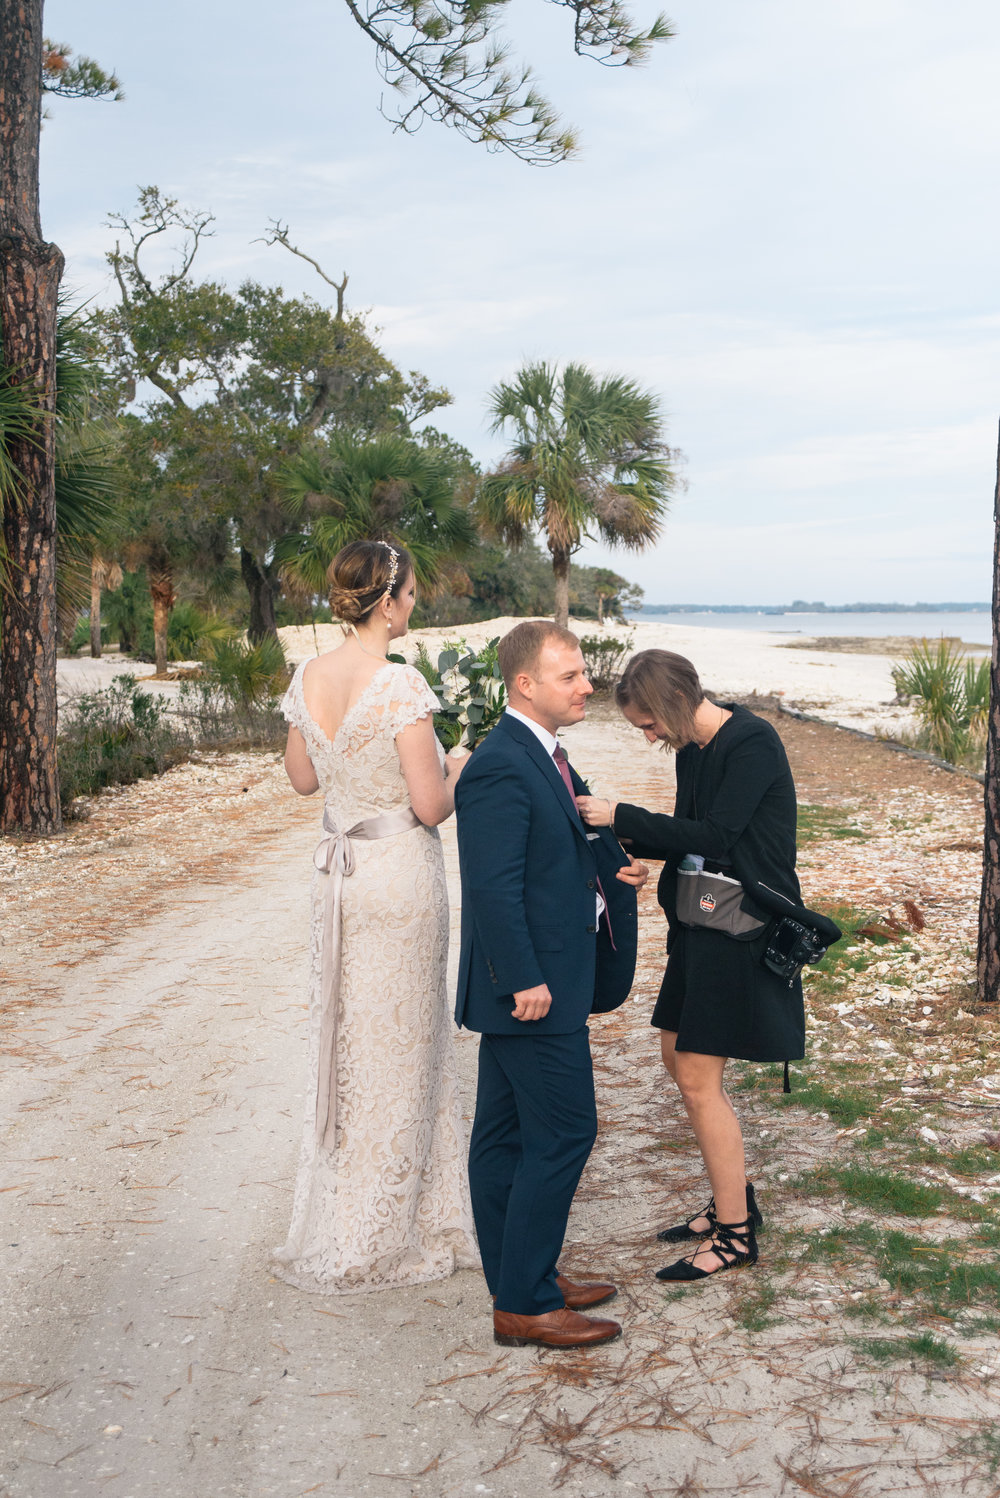 emily-and-david-daufuskie-island-wedding-december-wedding-meg-hill-photo- (410 of 728).jpg